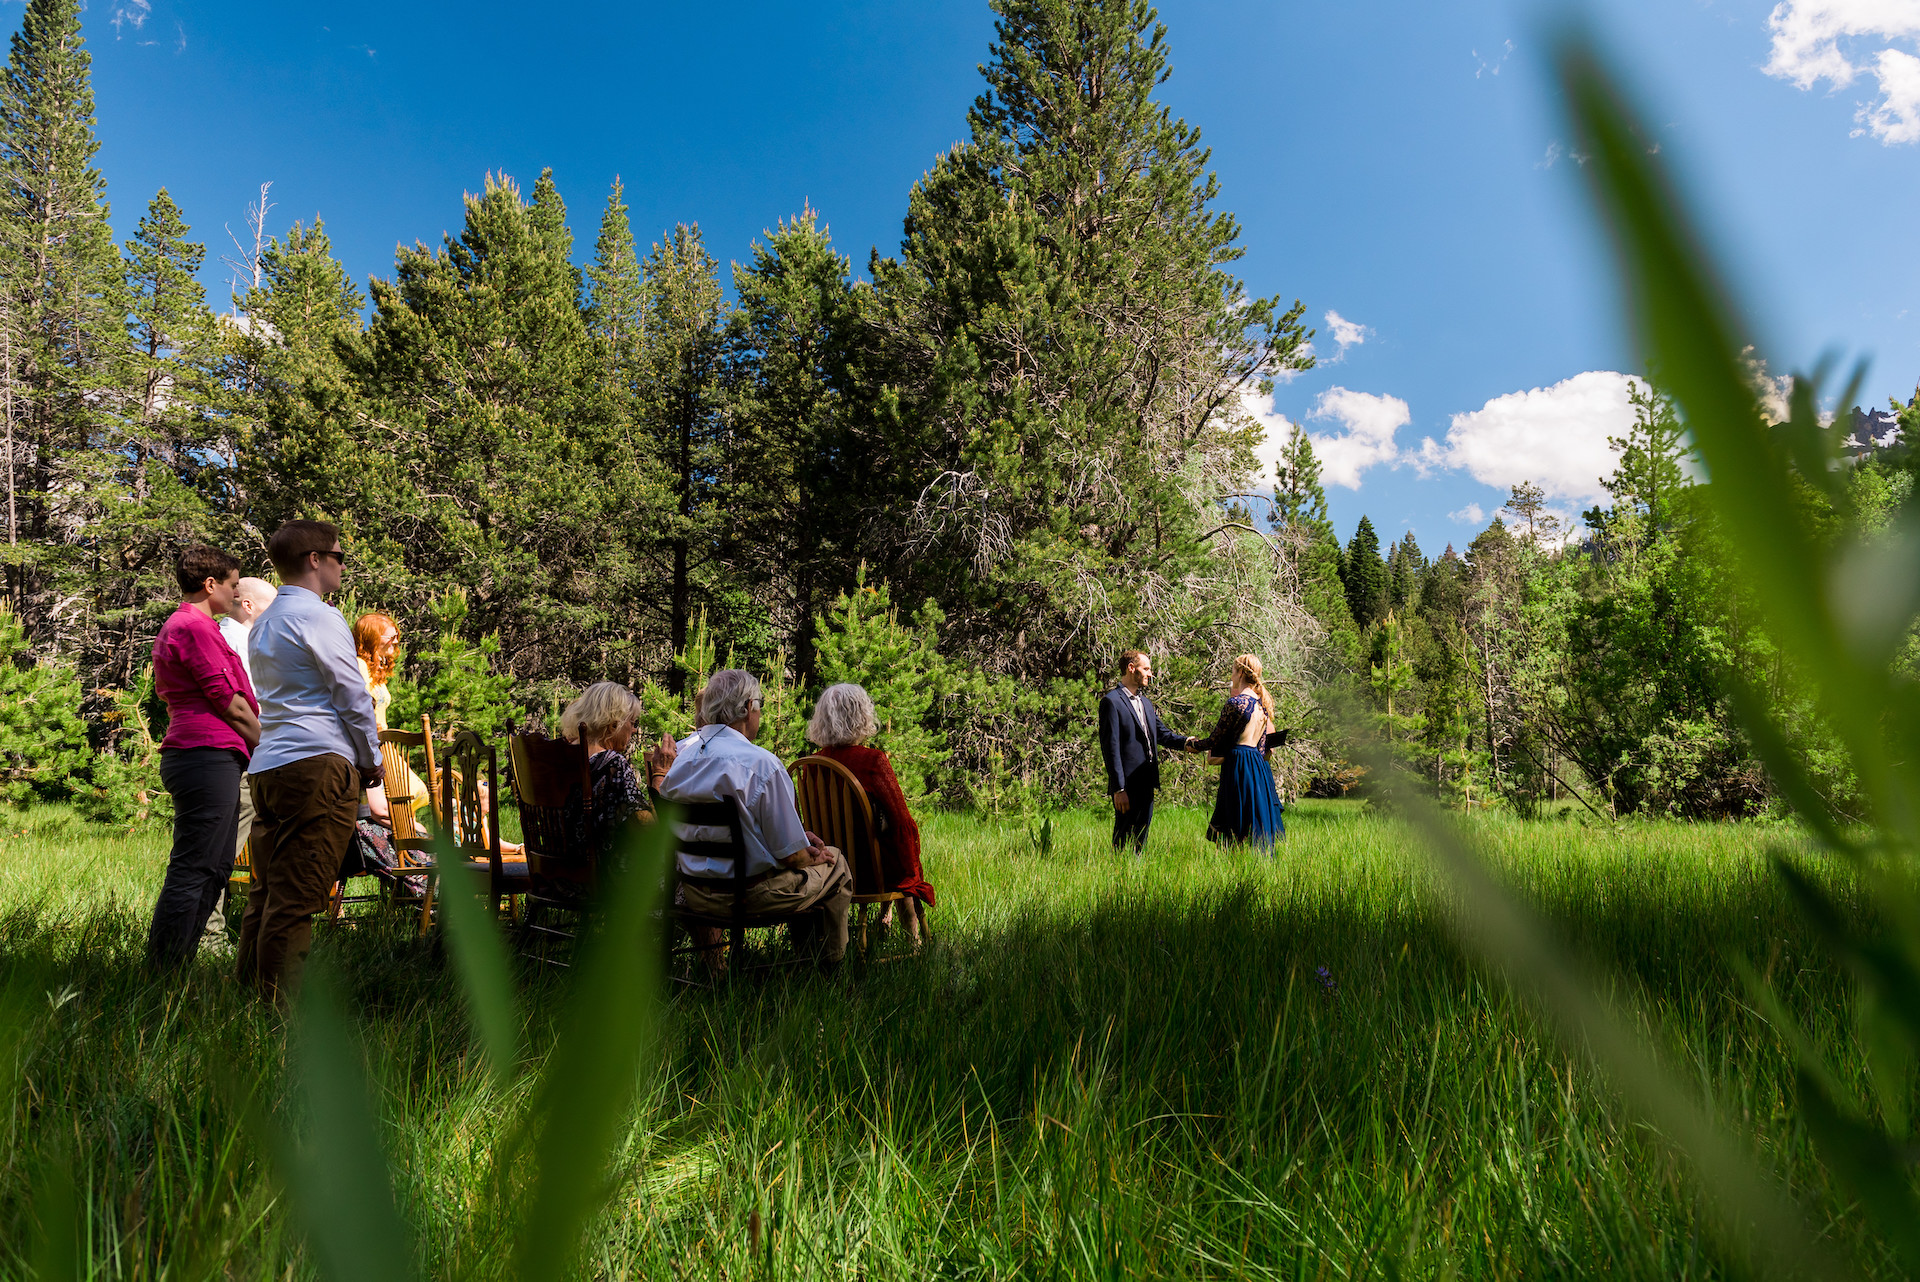 Lauren Lindley, of California, is a wedding photographer for Meadow outside South Lake Tahoe, CA